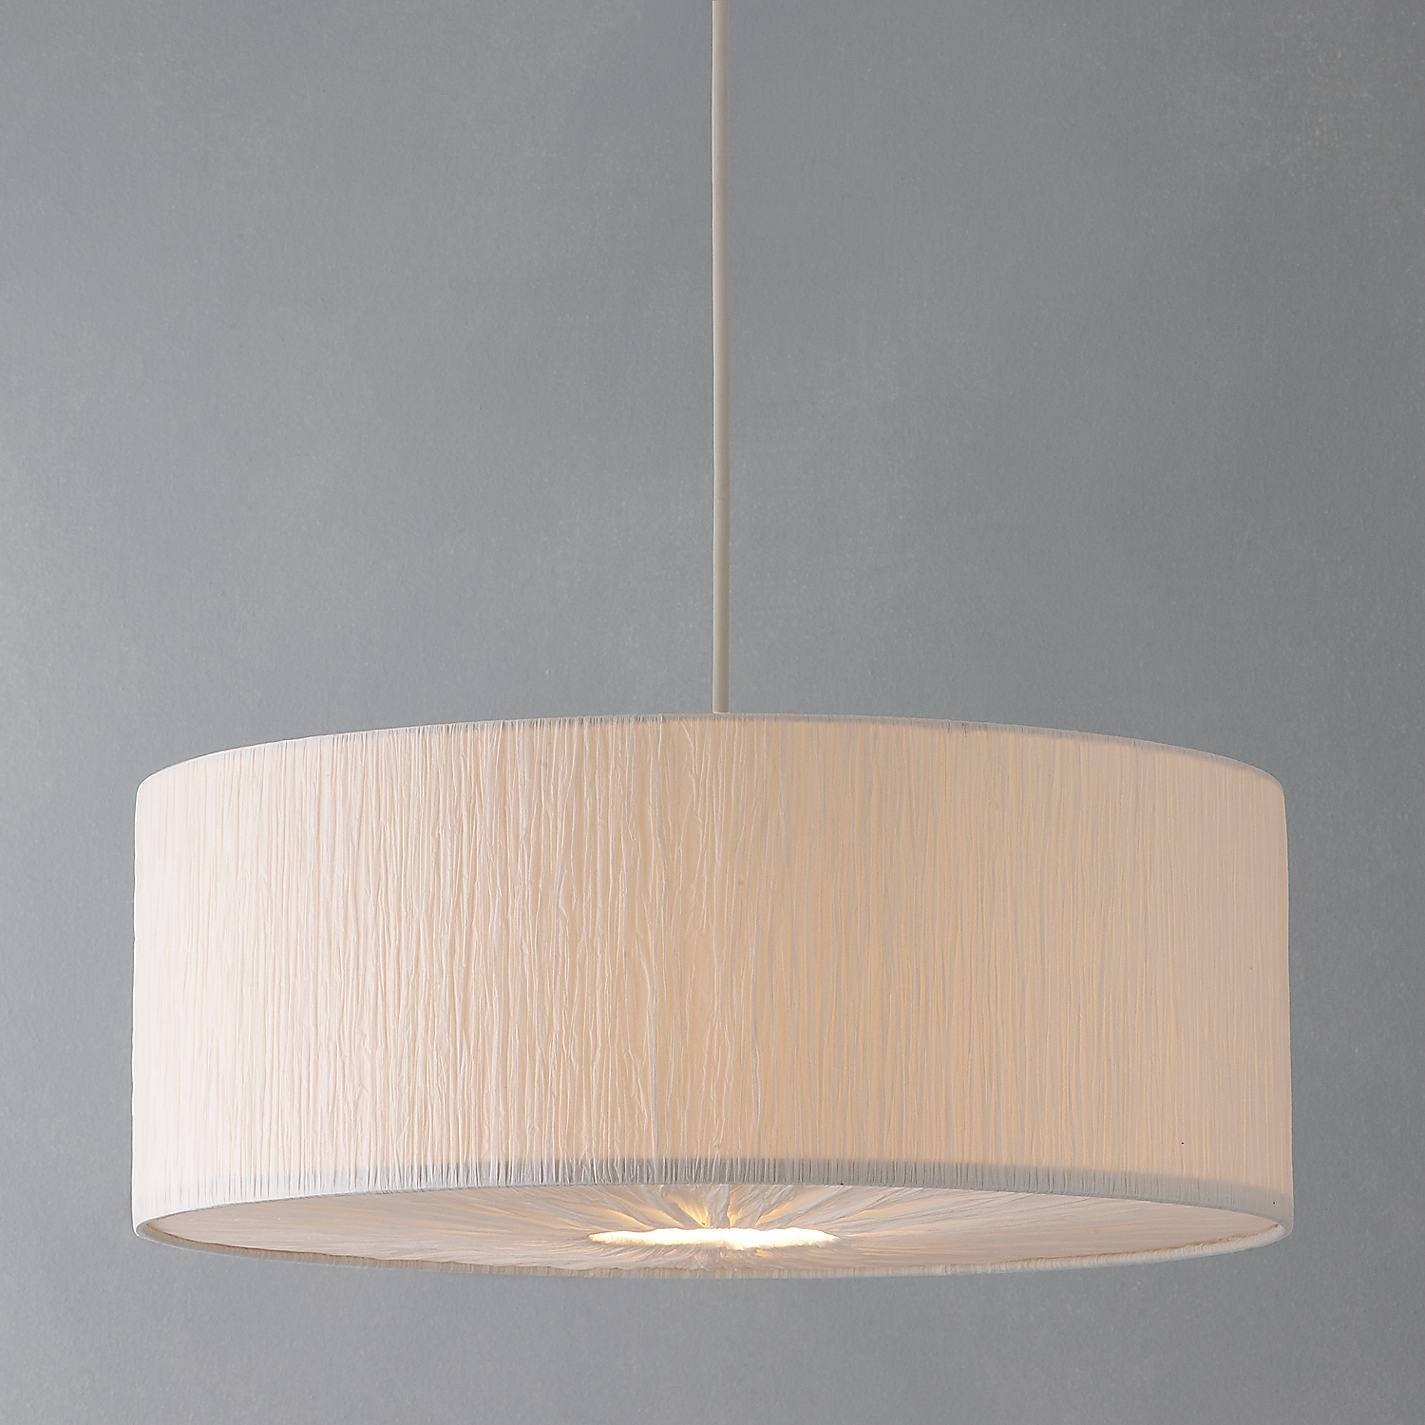 Table Lamp Shades Only | Cashorika Decoration pertaining to John Lewis Ceiling Lights Shades (Image 14 of 15)